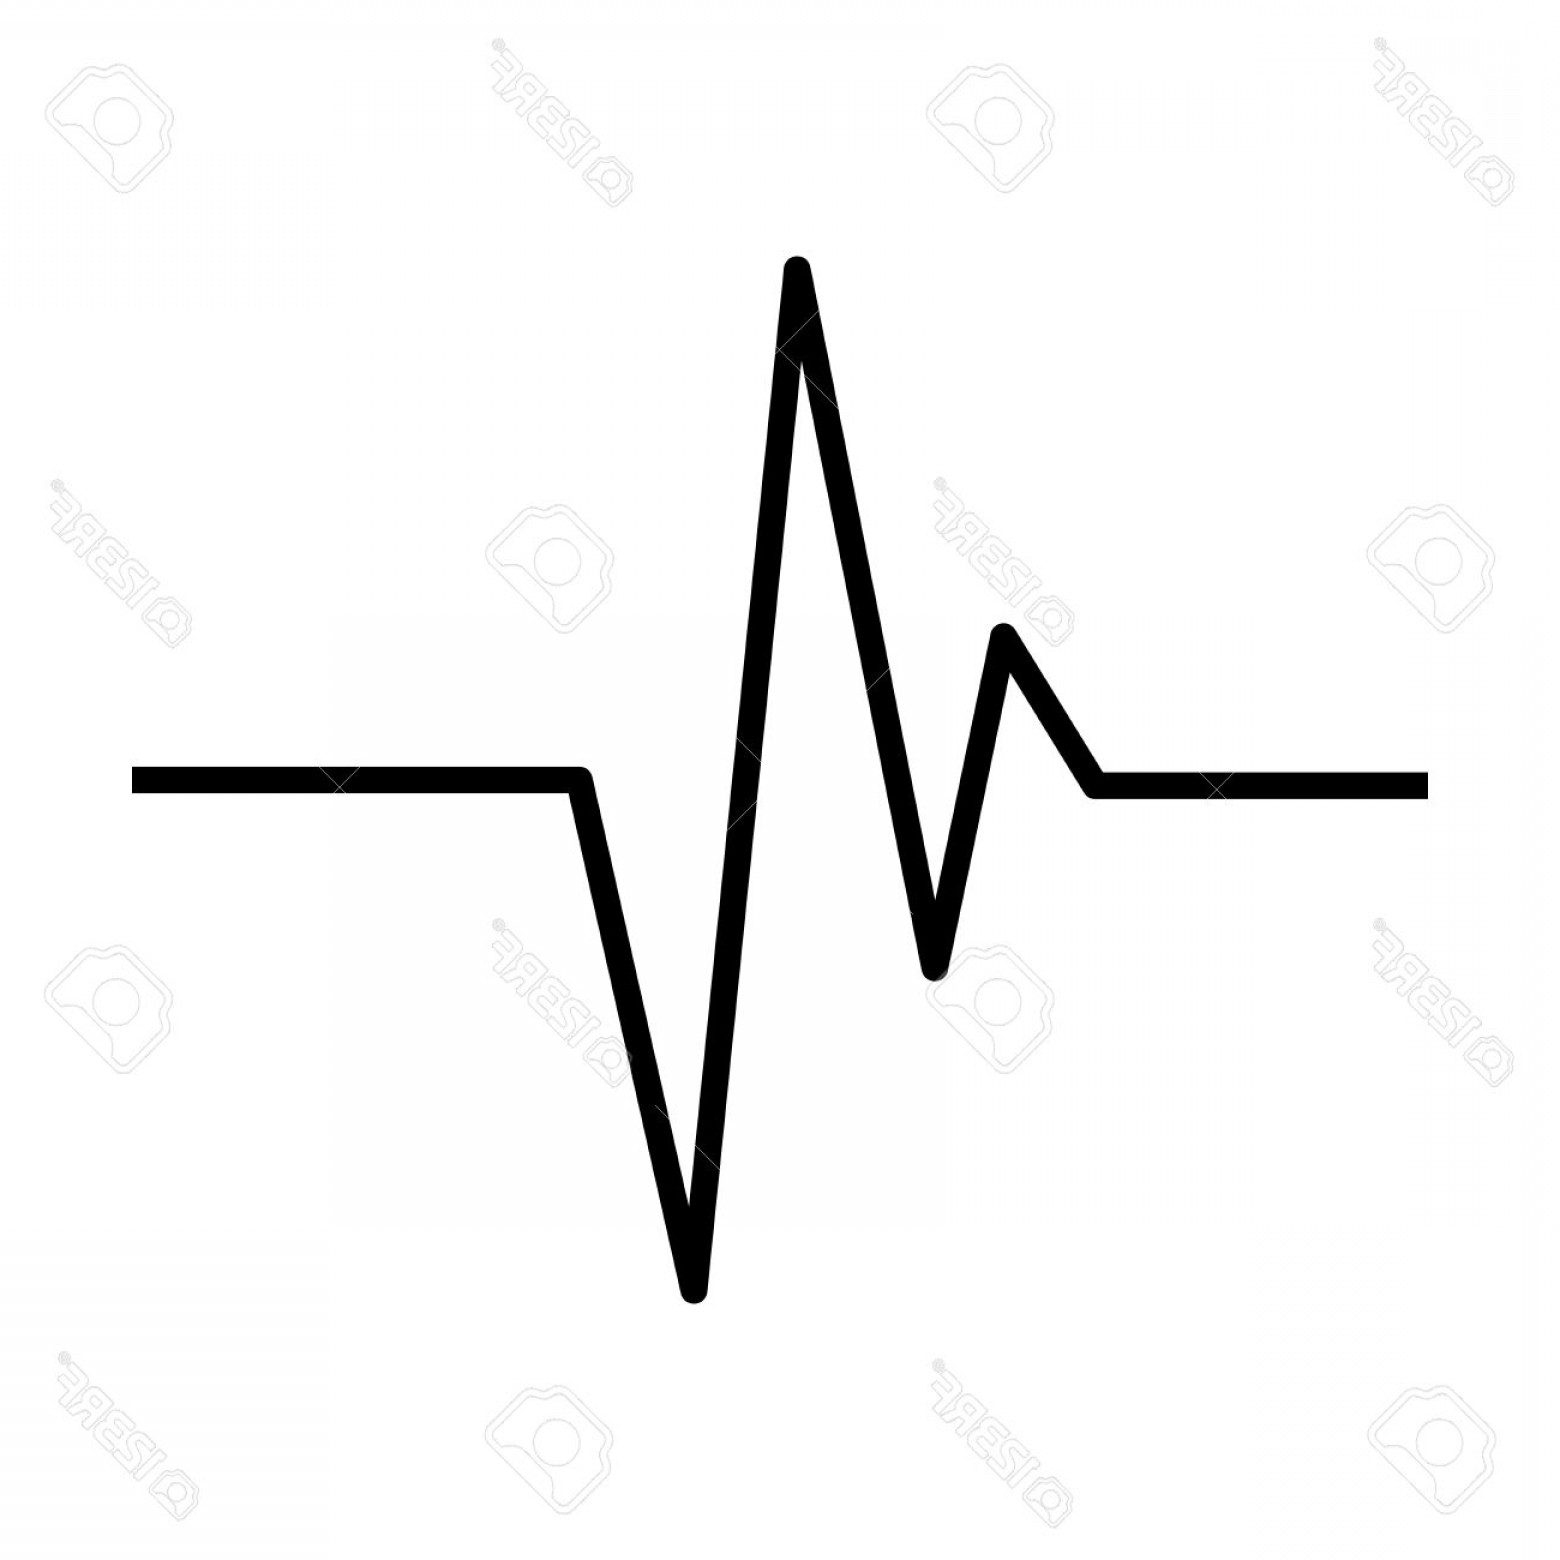 Heart With EKG Line Vector: Photostock Vector Heart Rhythm Ecg Line Vector Symbol Icon Design Beautiful Illustration Isolated On White Background